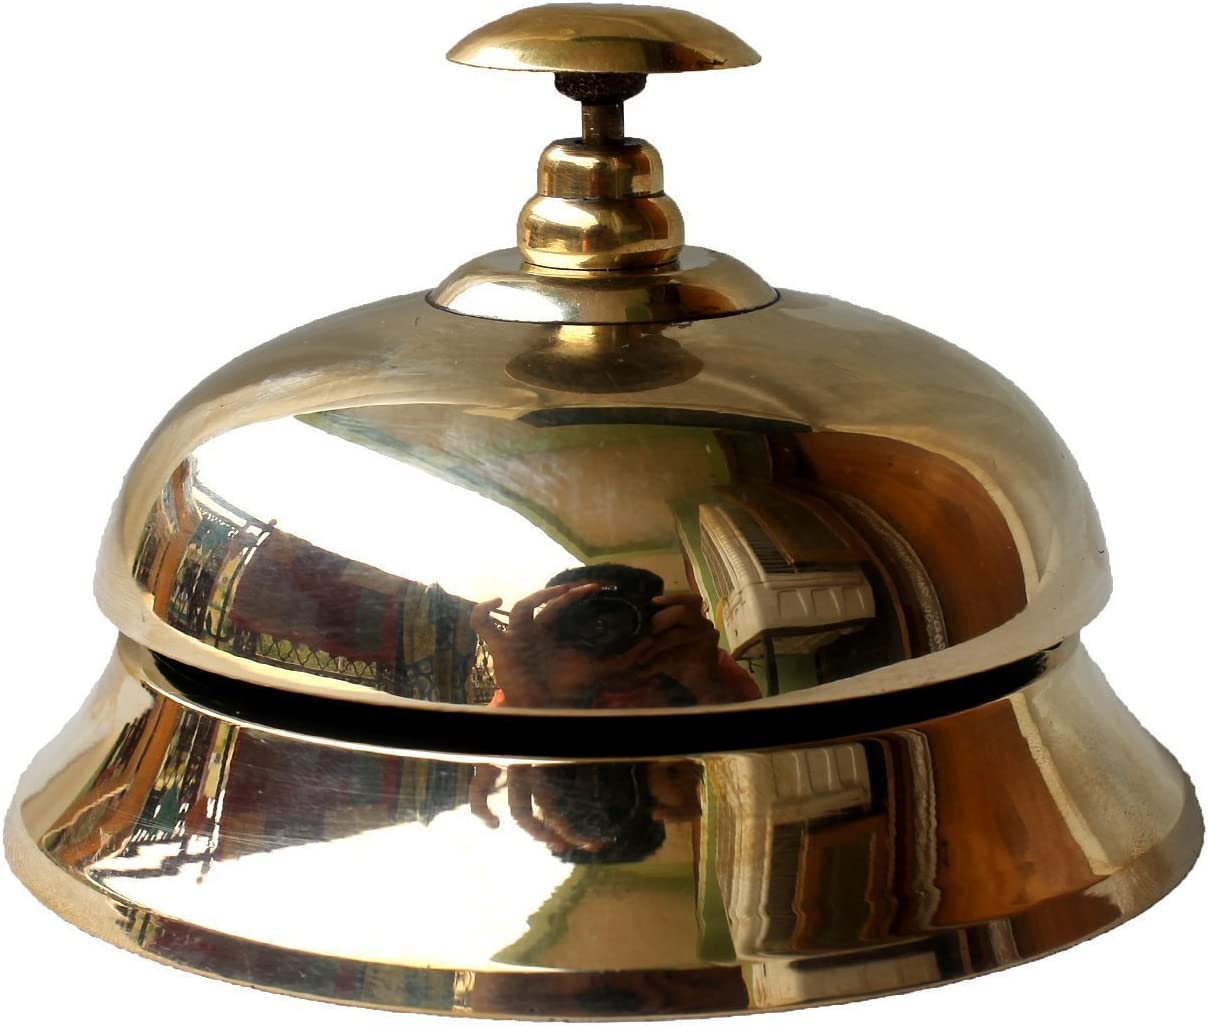 sliver Livoty Hotel Service Steel Bell Call Ringer Ring Reception Restaurant Desk Kitchen Toy great for kids pretend play